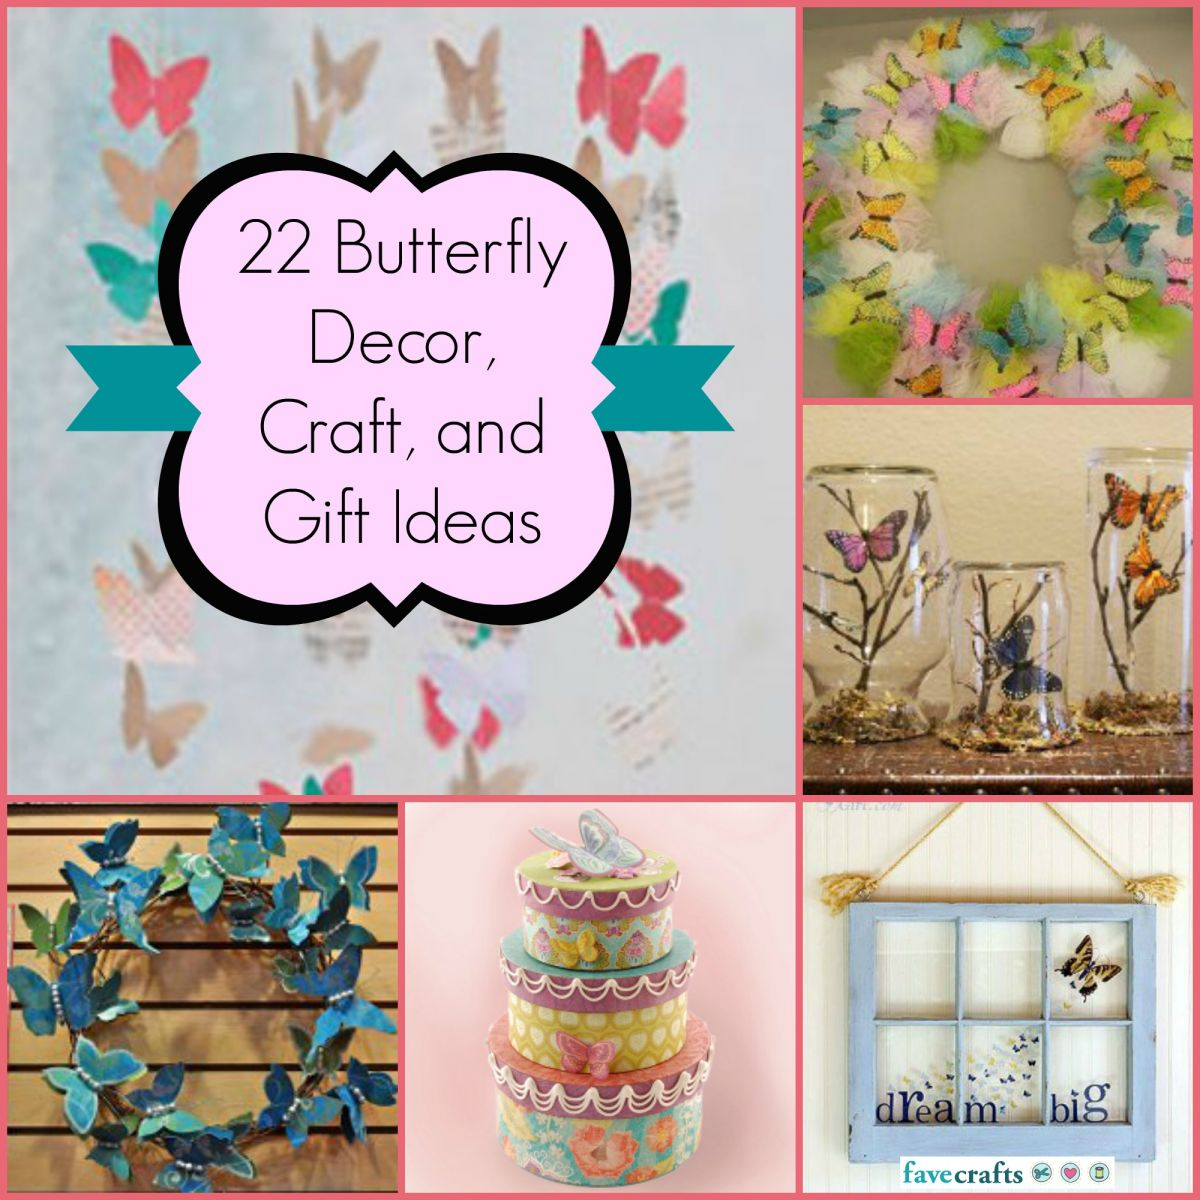 22 Butterfly Decor, Craft and Gift Ideas